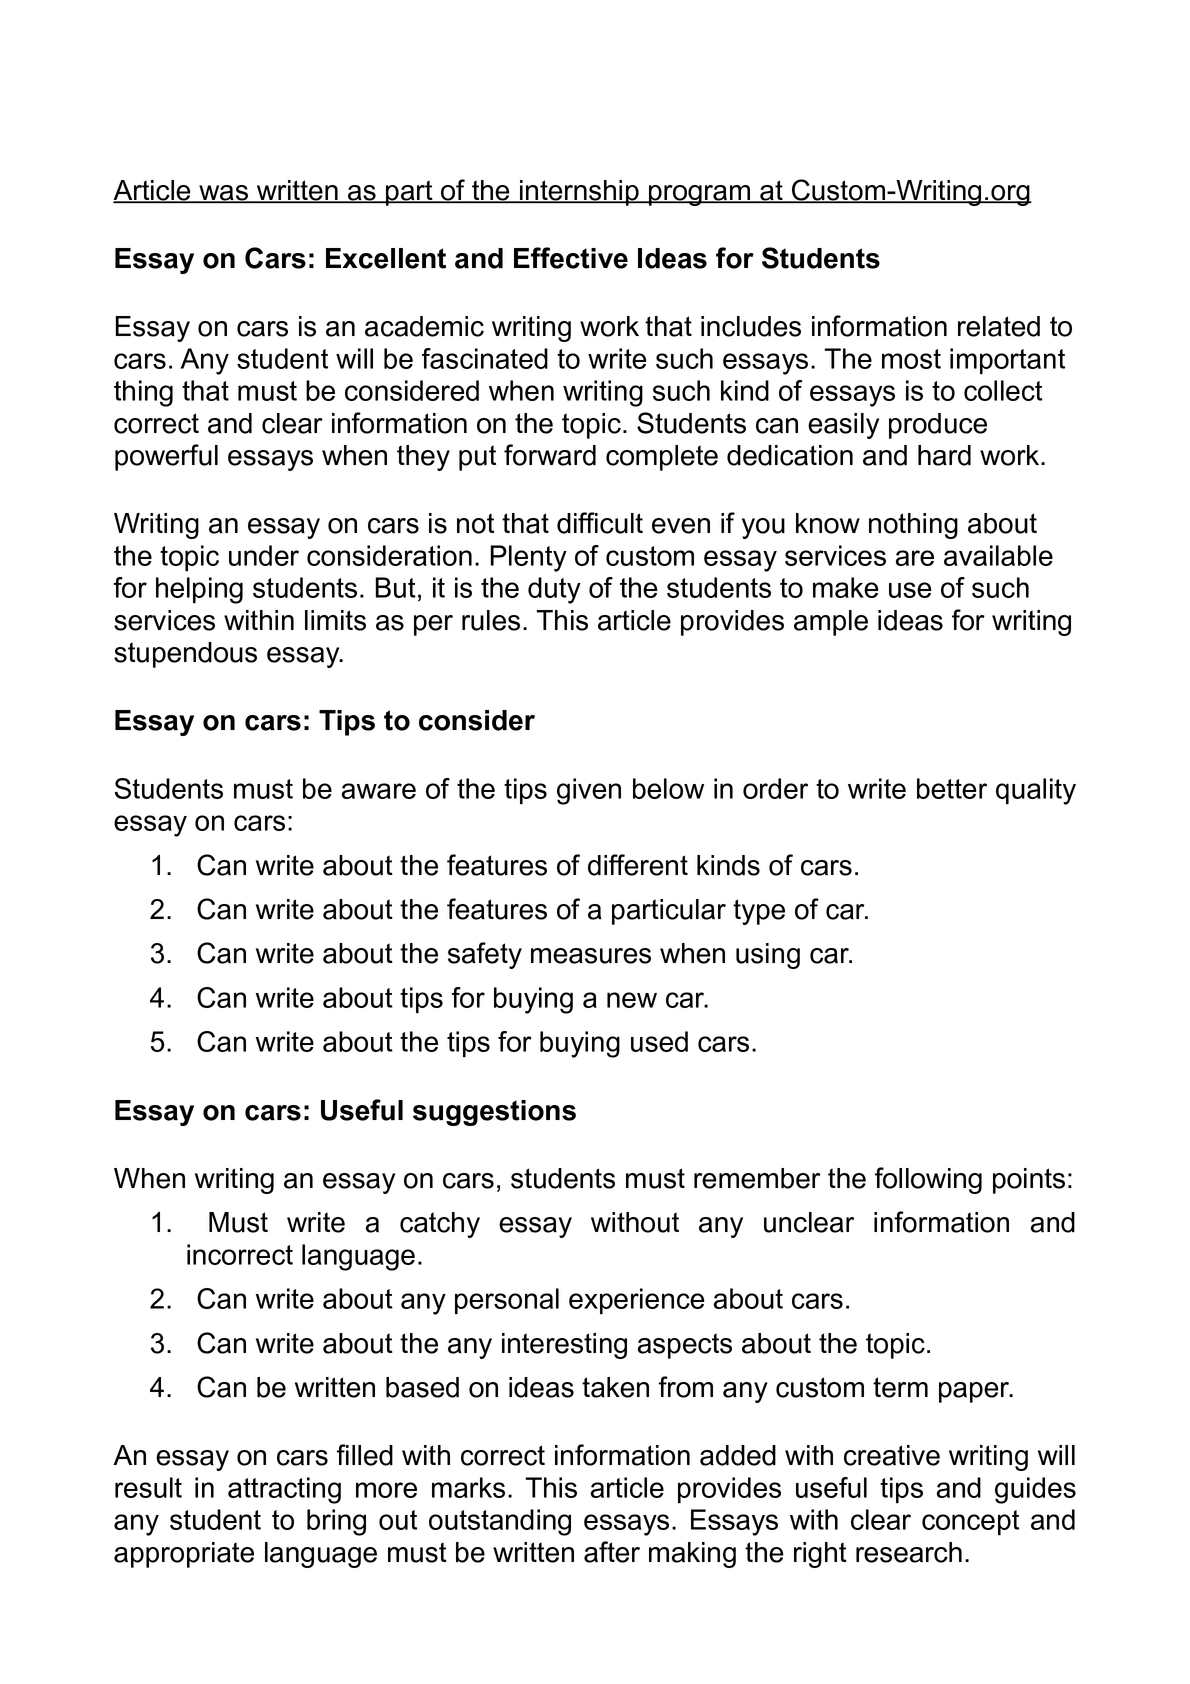 Calaméo - Essay on Cars: Excellent and Effective Ideas for Students